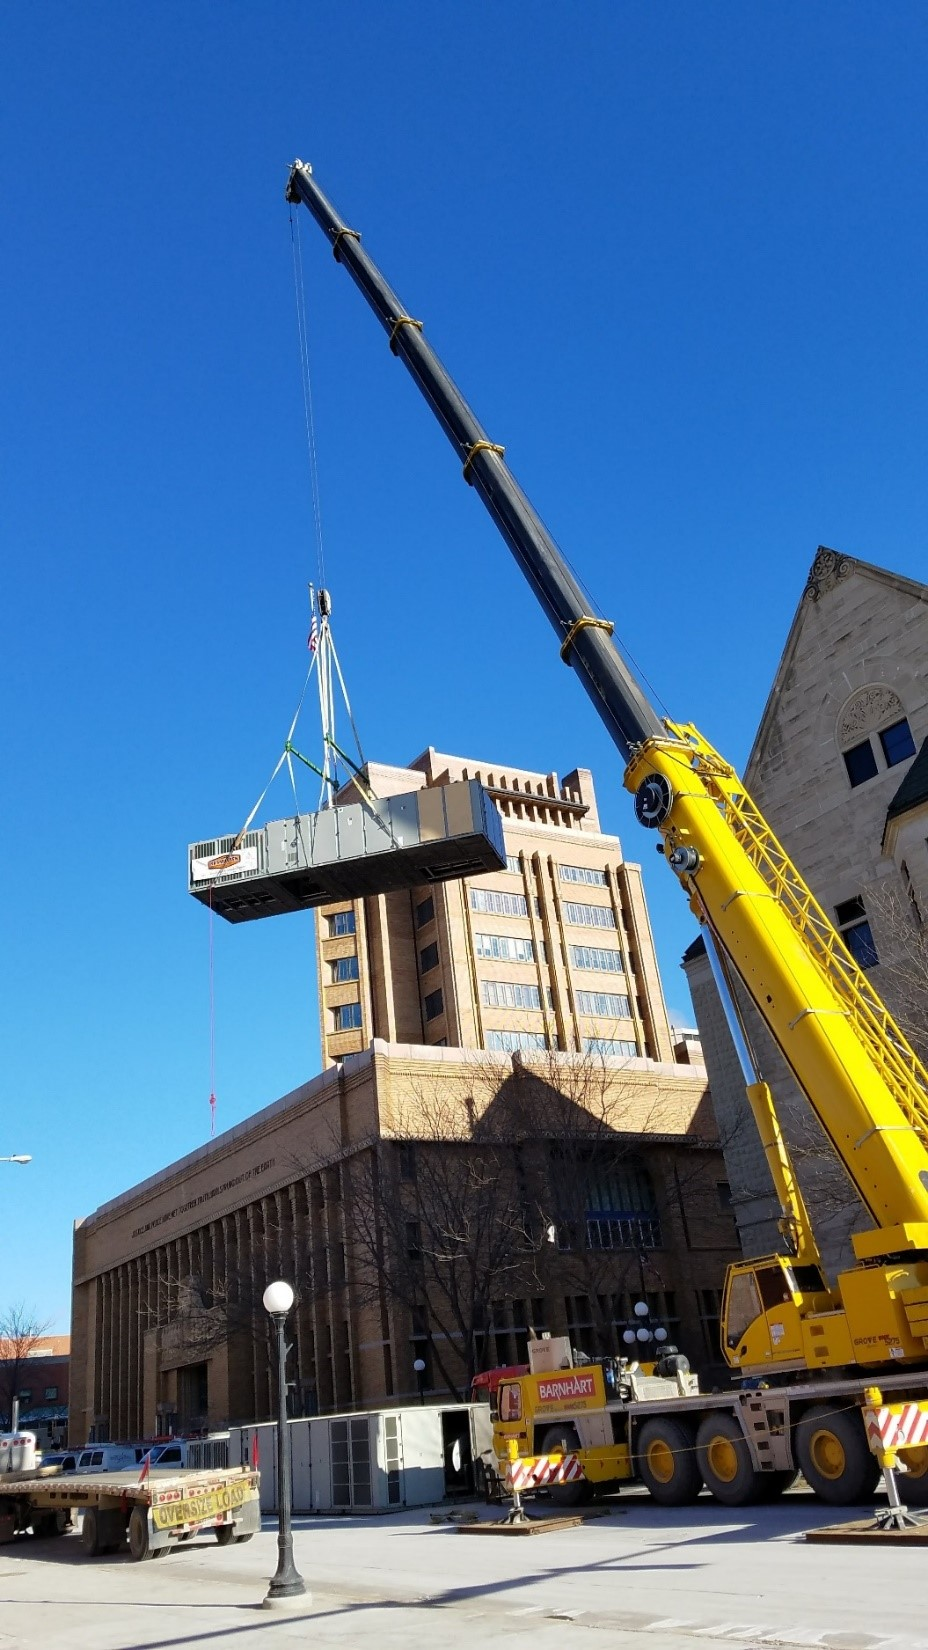 Trane IntelliPak being lifted with a crane to a rooftop